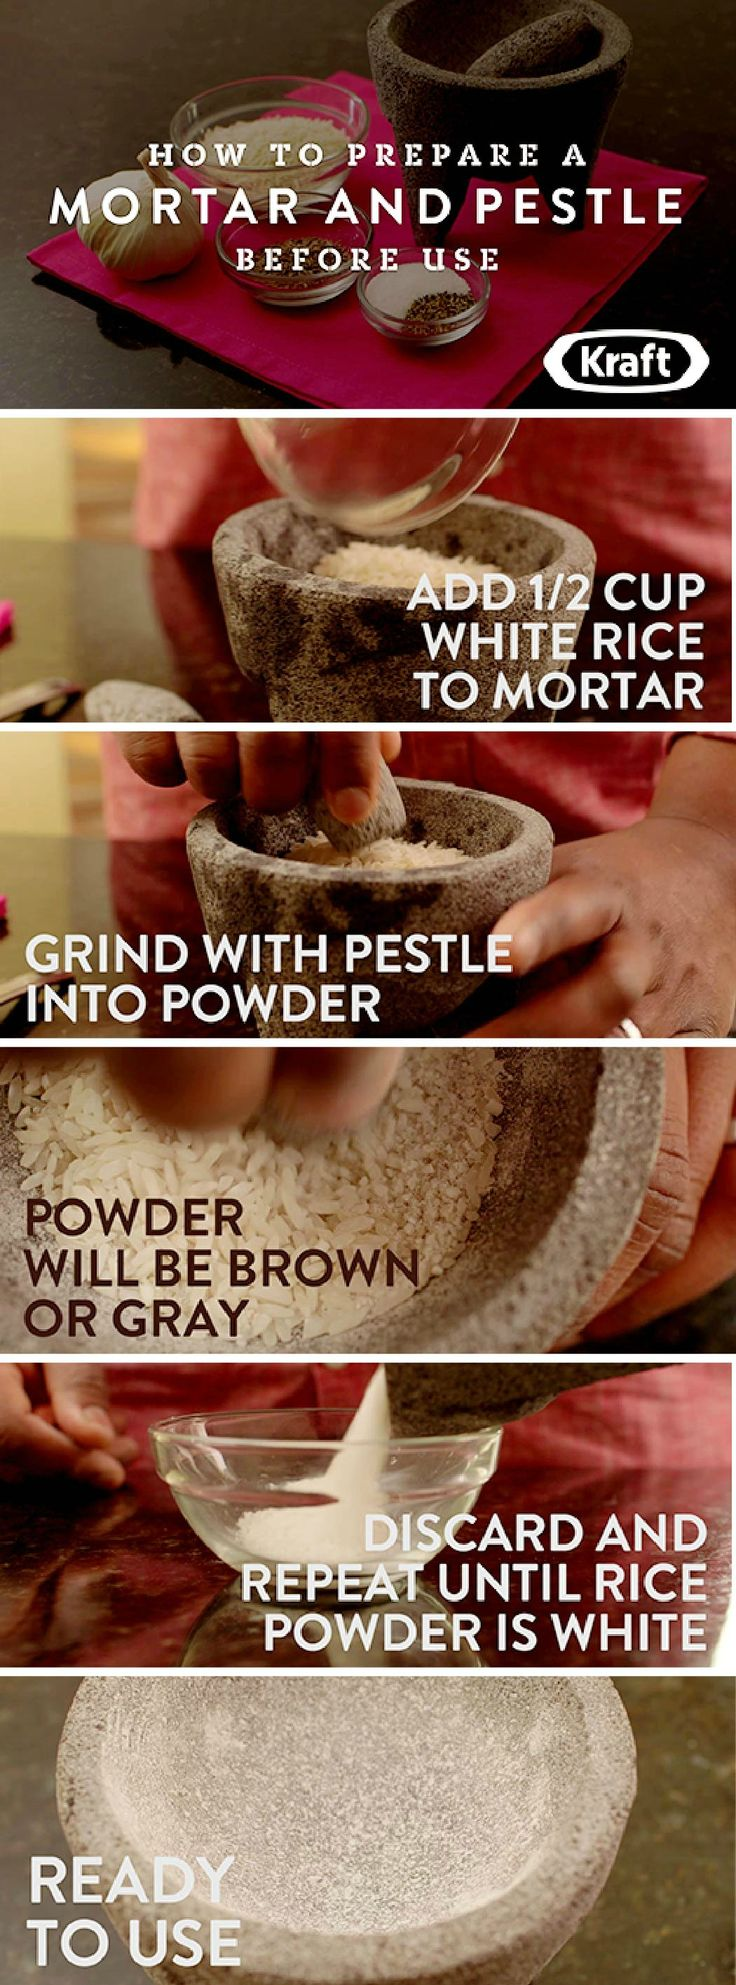 25 best ideas about mortar and pestle on pinterest masons mortar traditional small kitchens. Black Bedroom Furniture Sets. Home Design Ideas